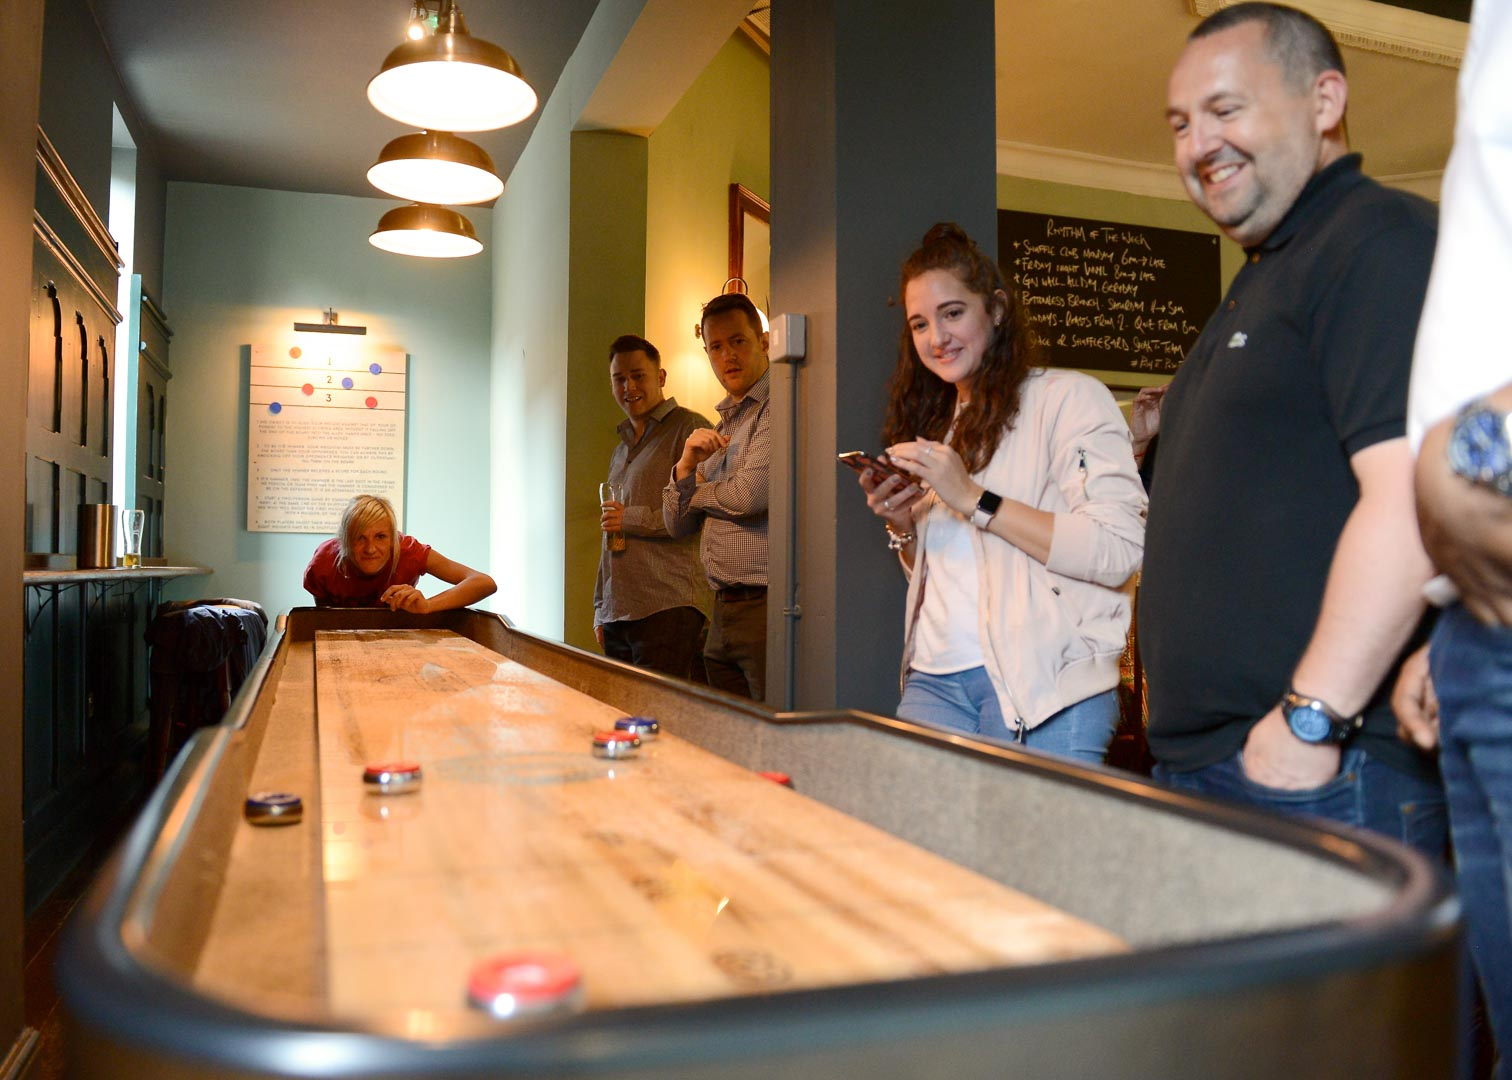 Shuffleboard group